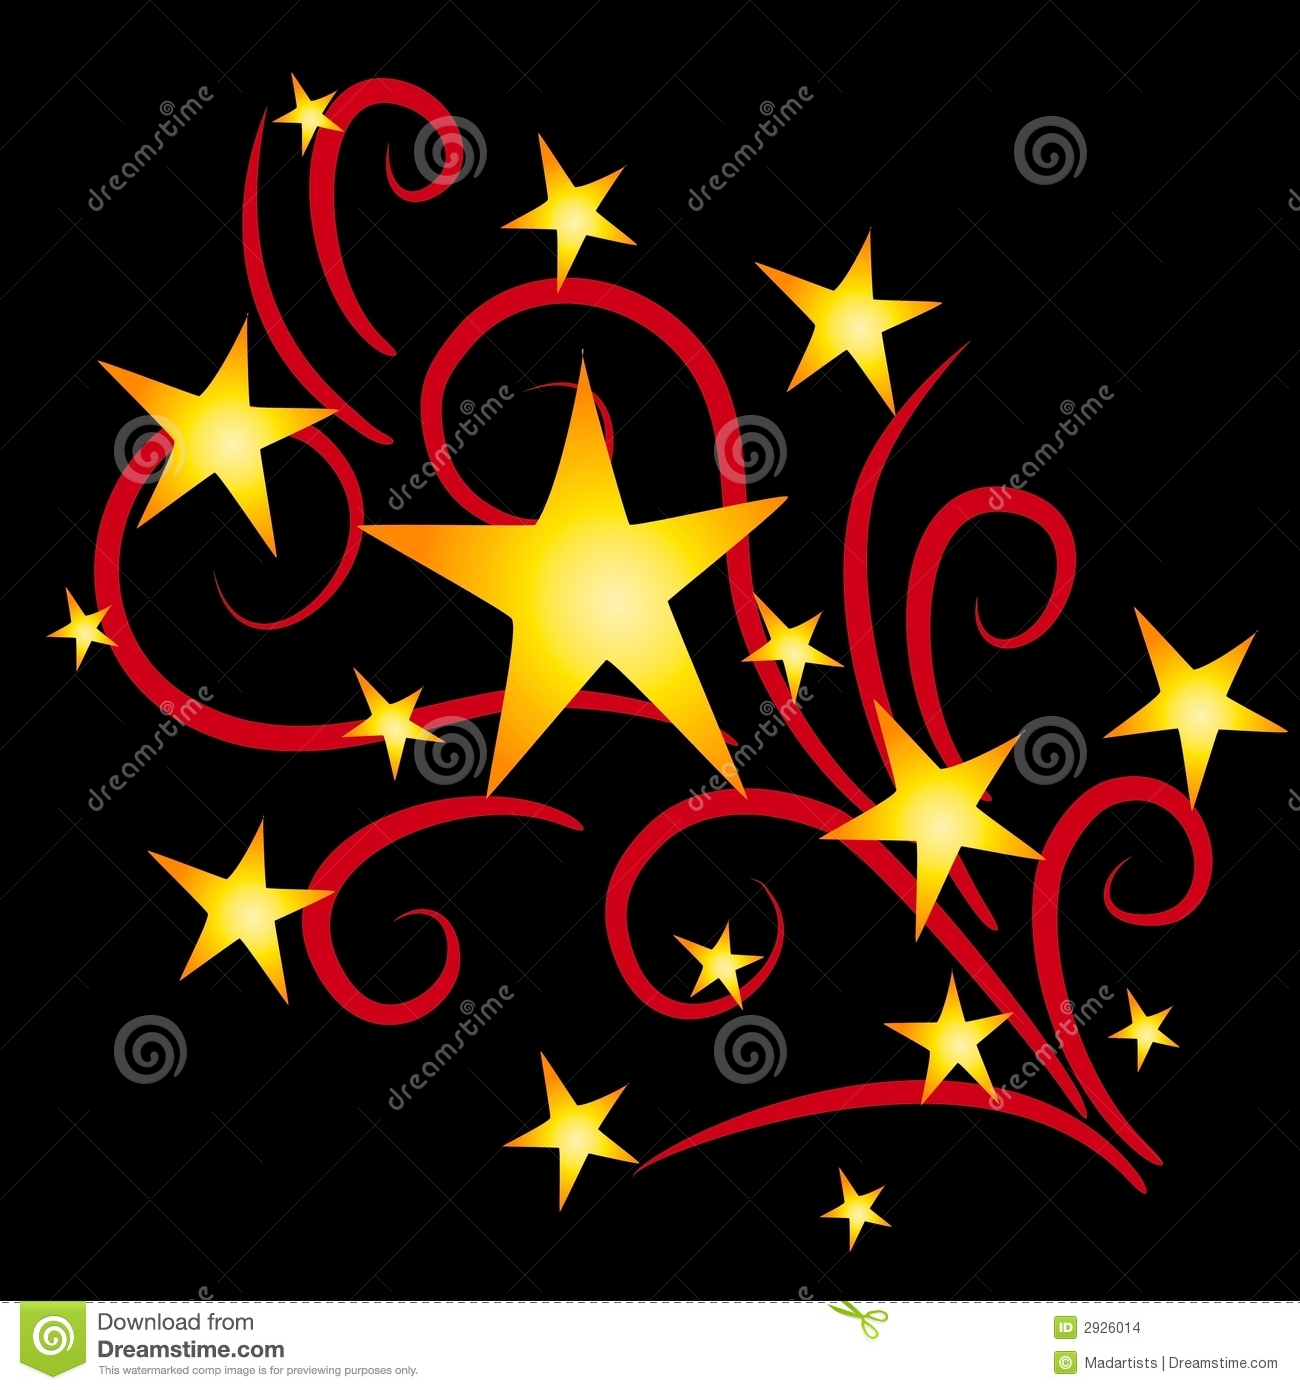 Red star fireworks clipart.